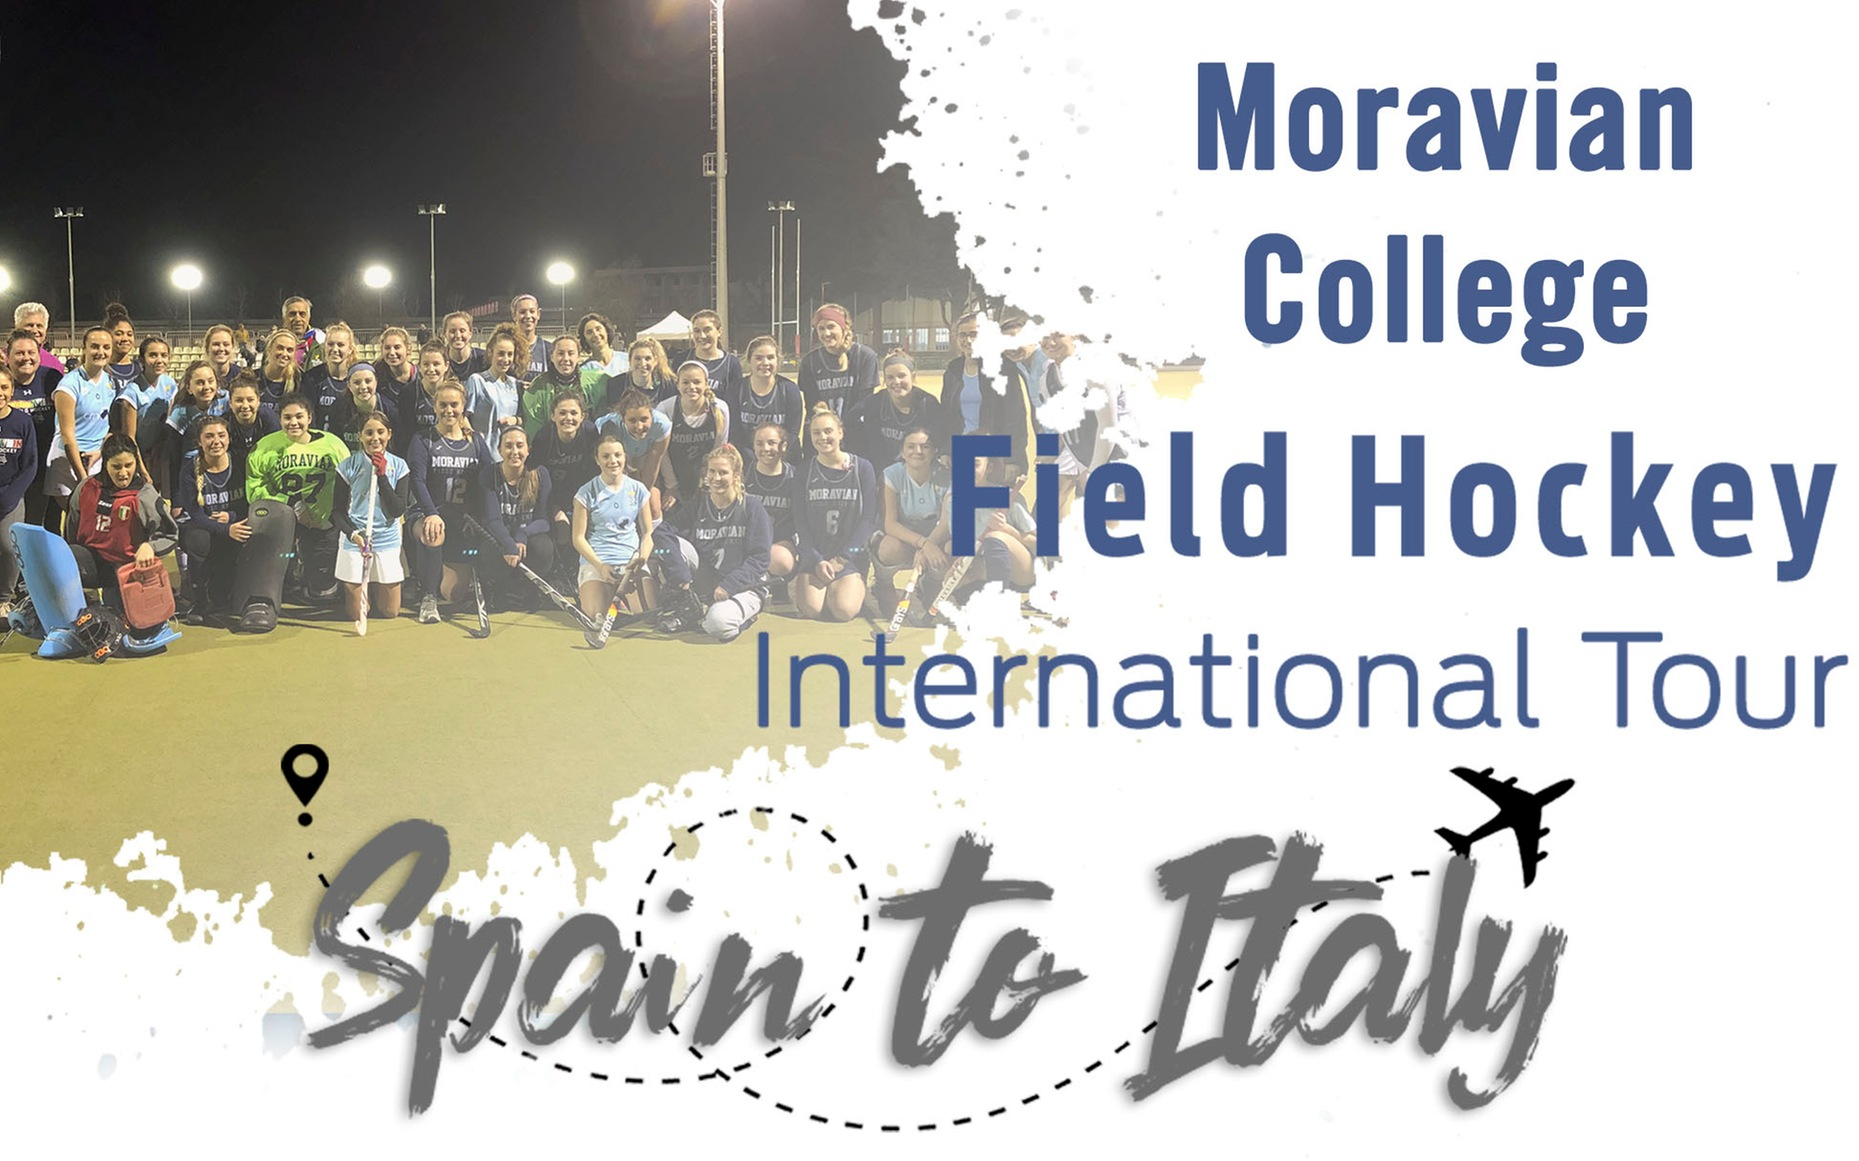 Field hockey team International tour to Spain and Italy in January 2019.